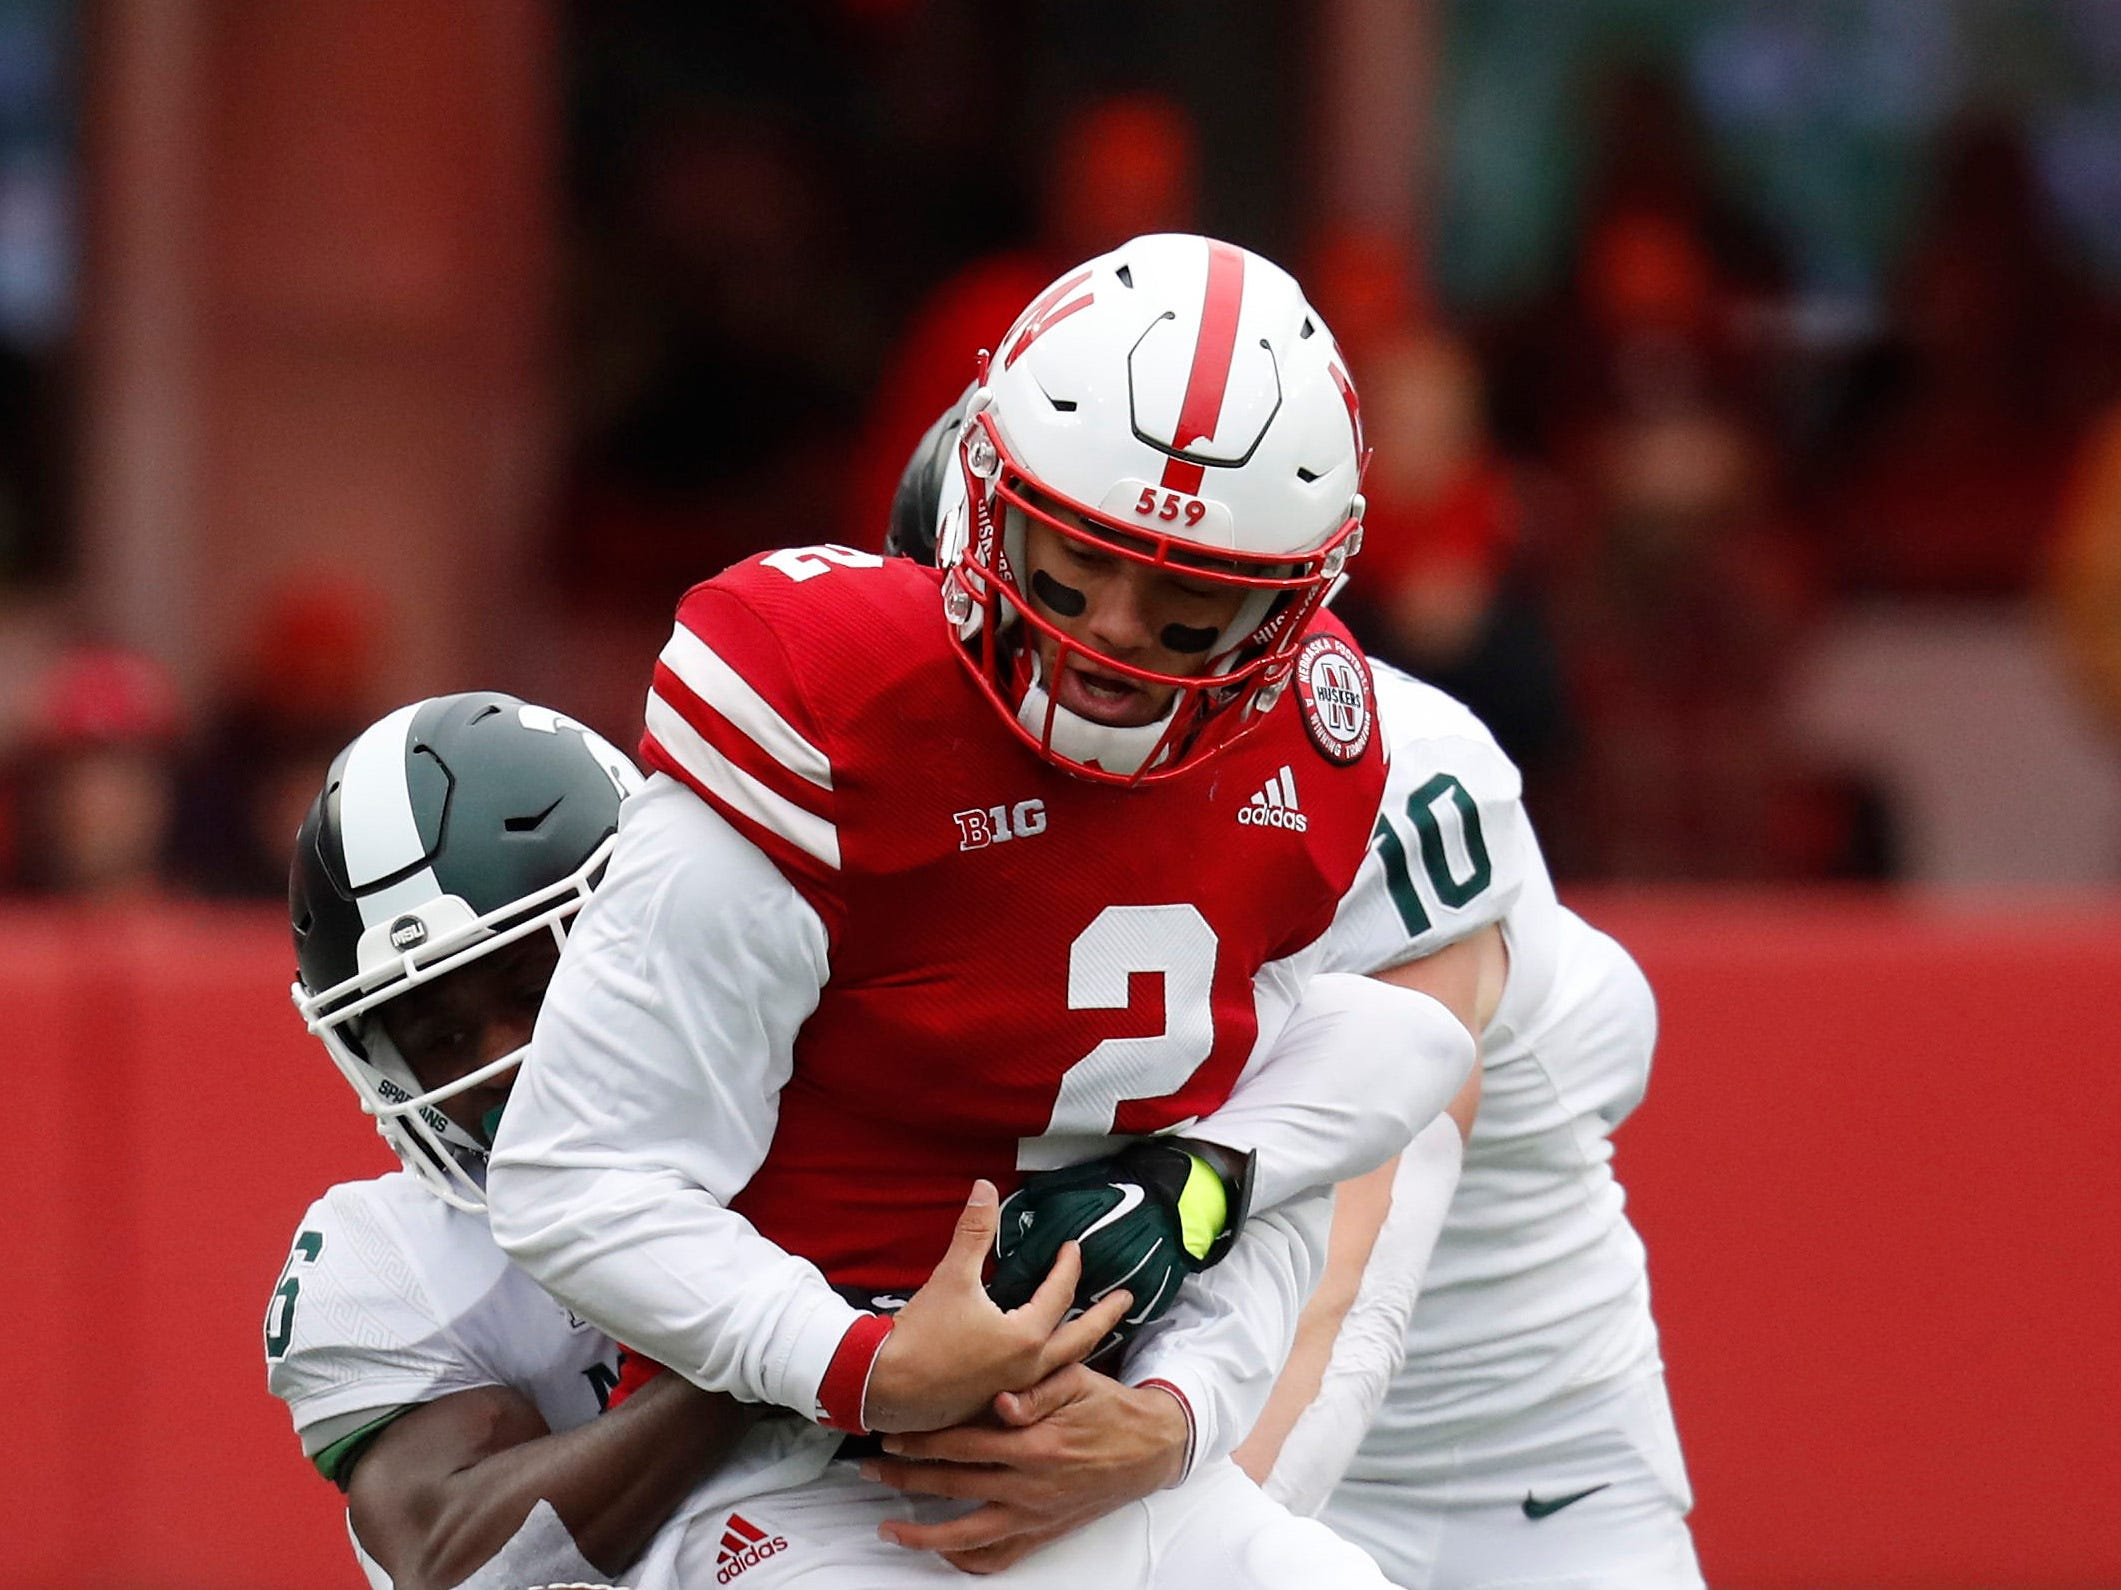 Nov 17, 2018; Lincoln, NE, USA; Nebraska Cornhuskers quarterback Adrian Martinez (2) fumbles the ball against Michigan State Spartans safety David Dowell (6) in the first half at Memorial Stadium. Mandatory Credit: Bruce Thorson-USA TODAY Sports